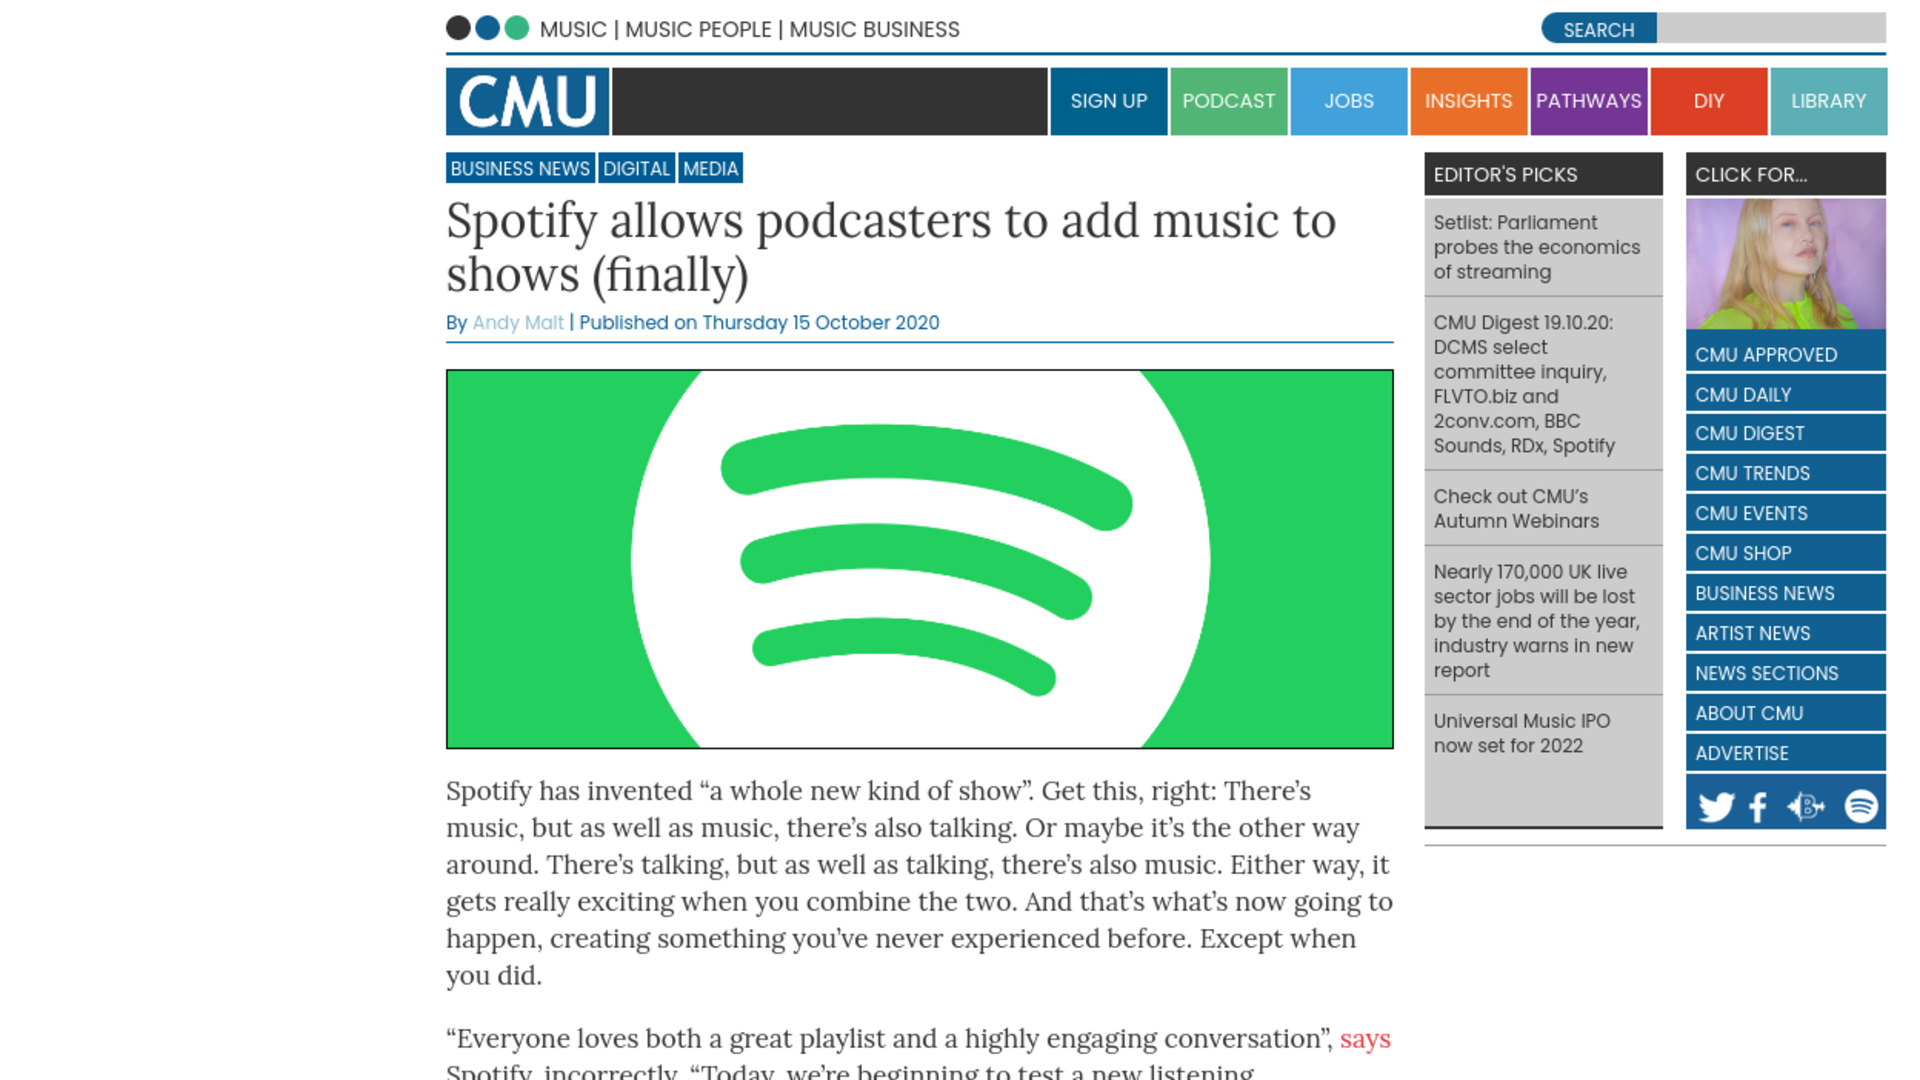 Fairness Rocks News Spotify allows podcasters to add music to shows (finally)